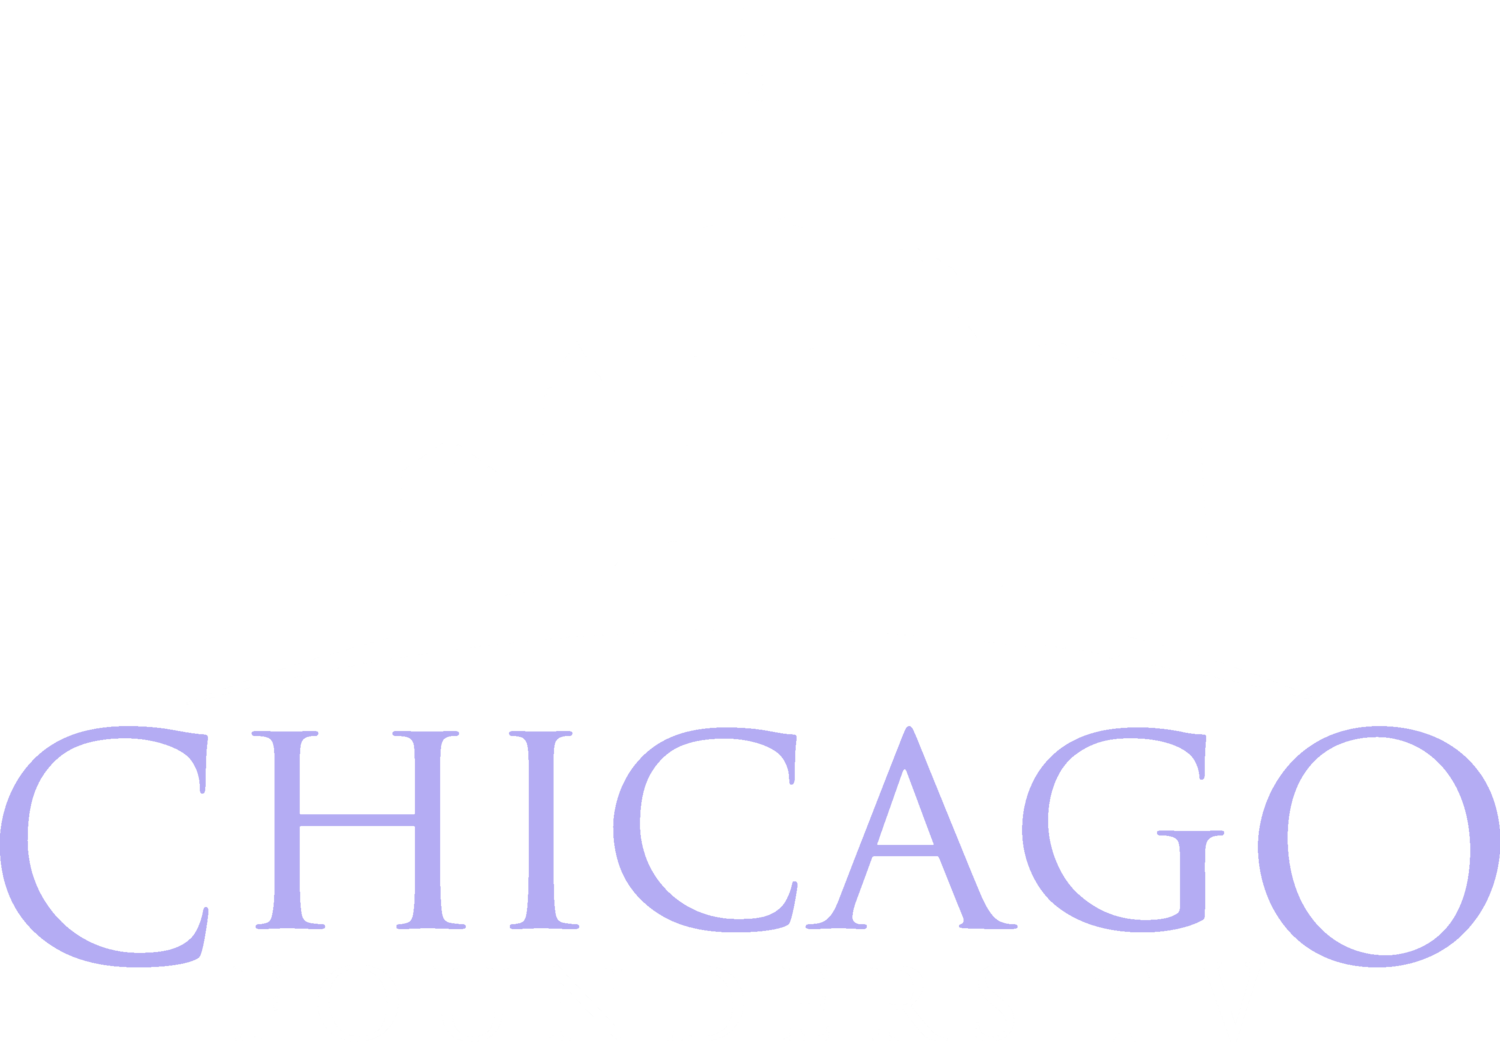 Chicago Founders TV